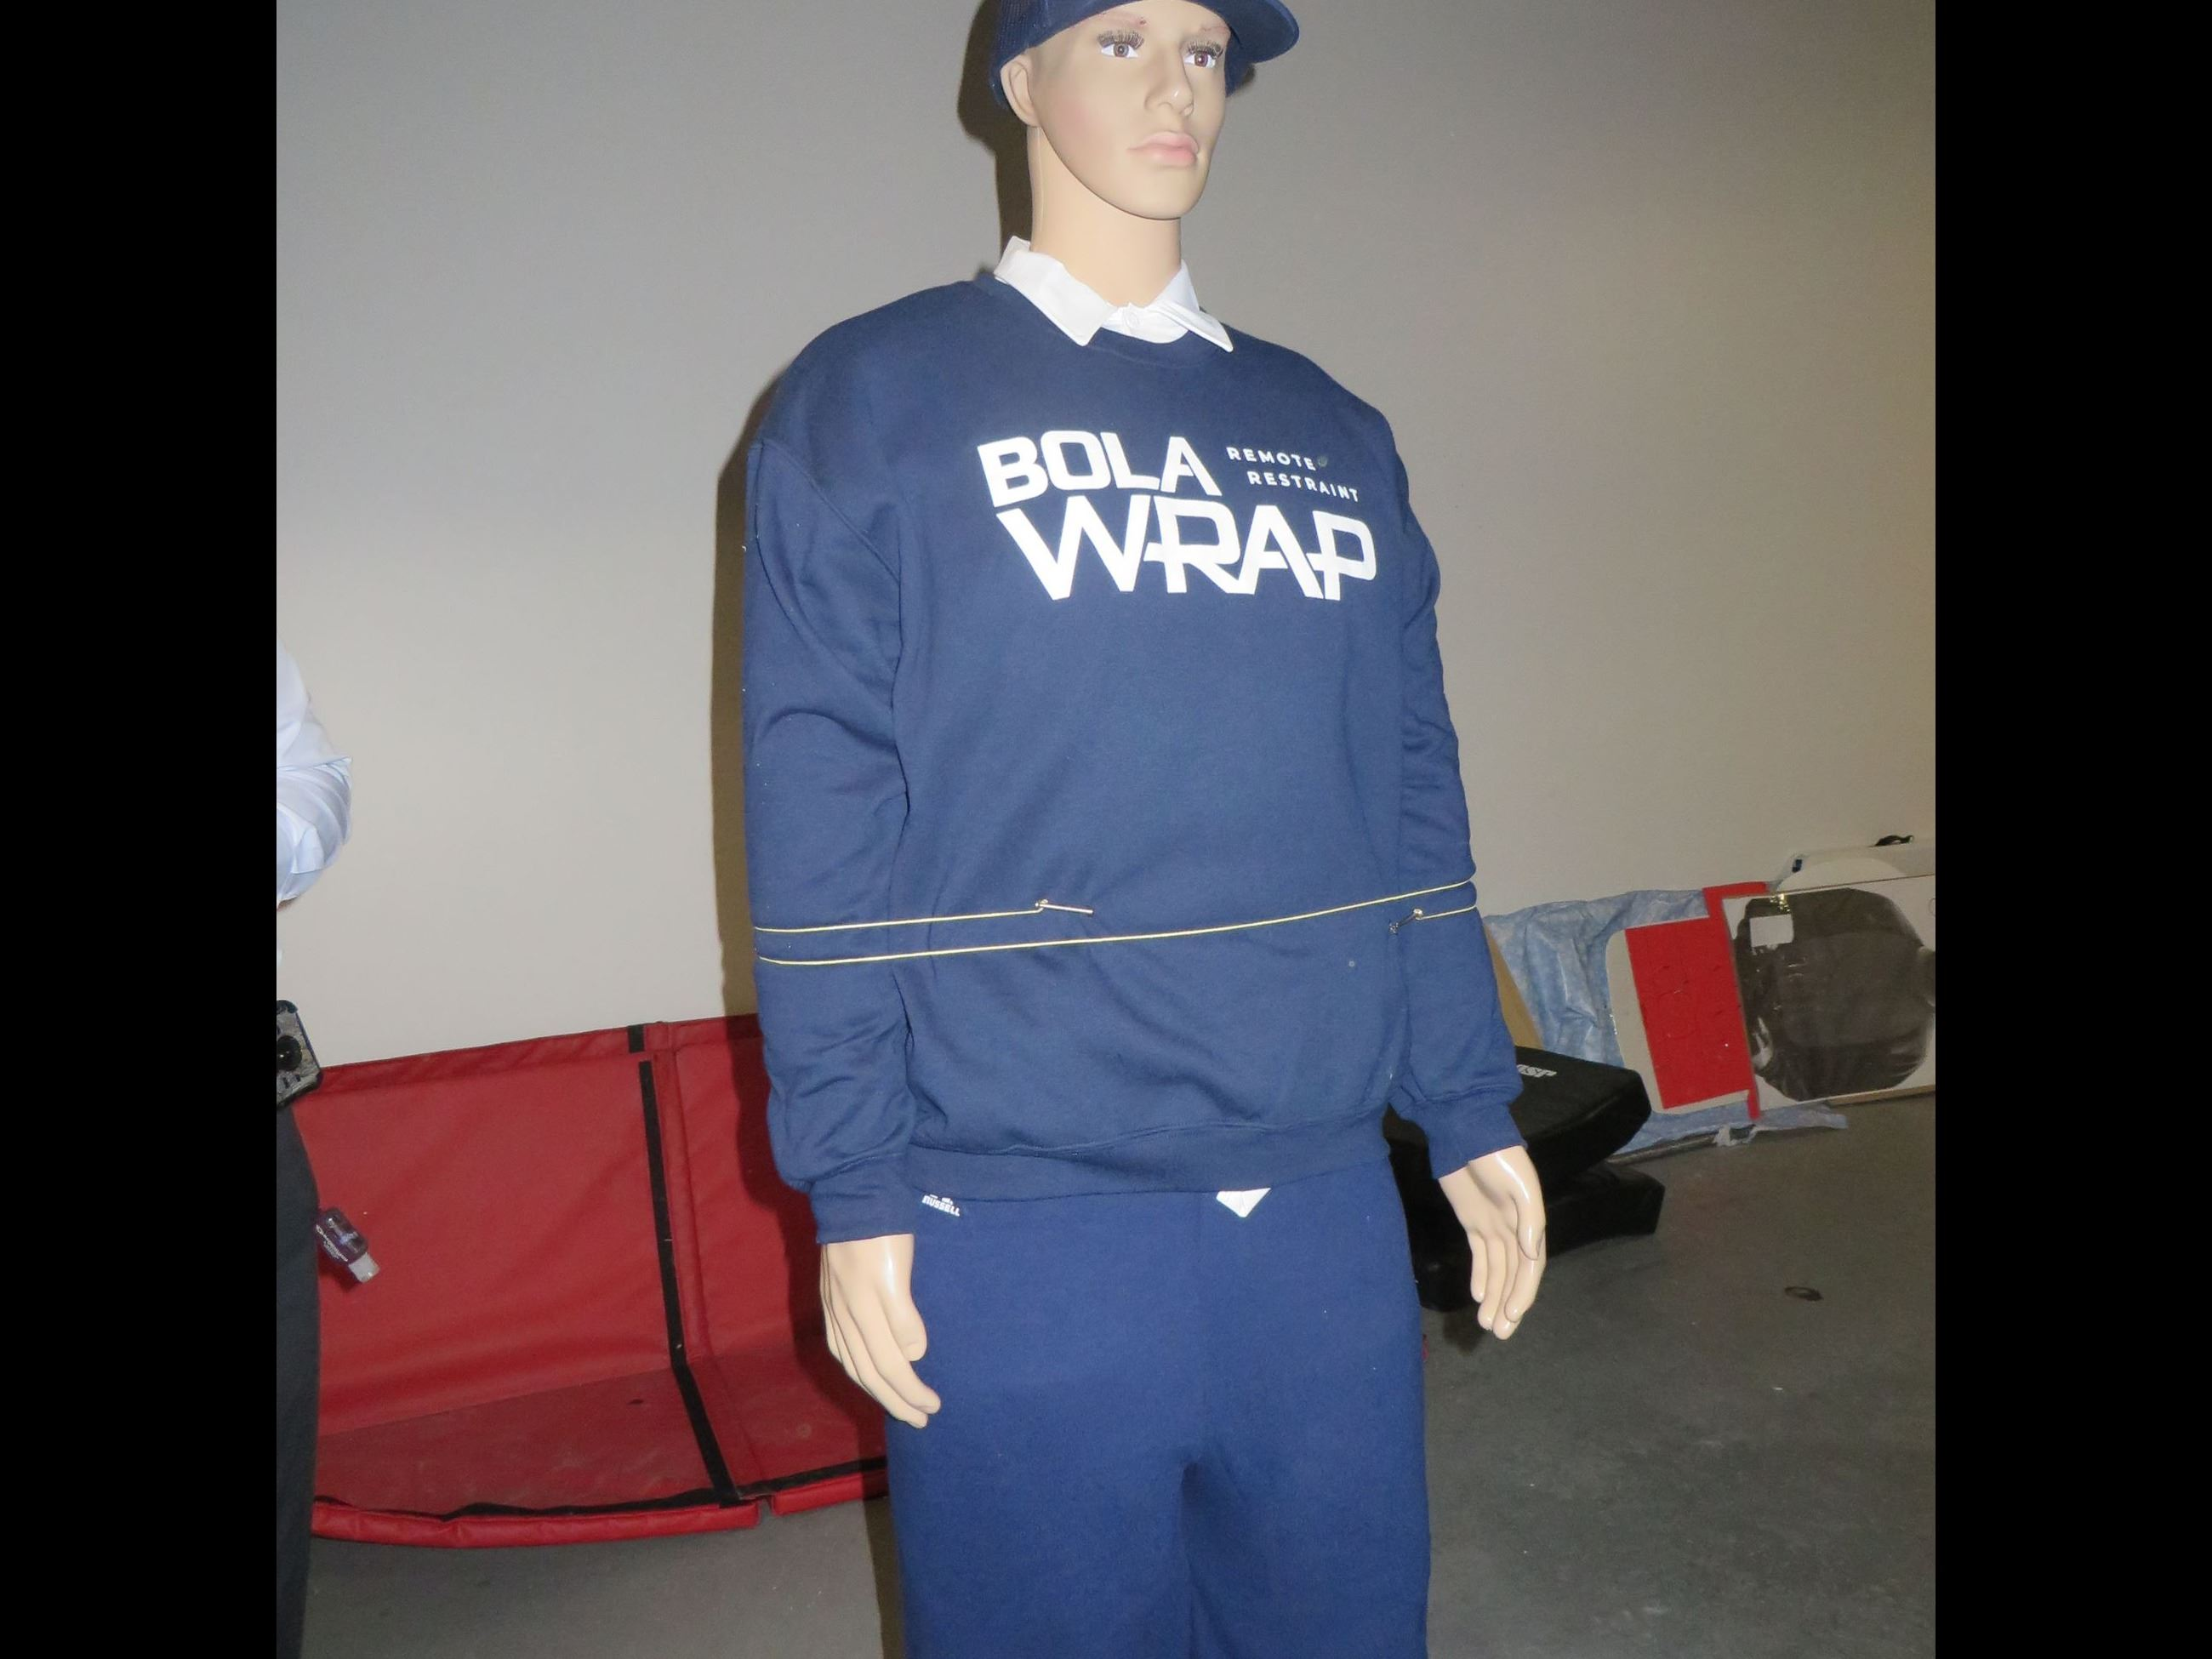 Mannequin with wrap